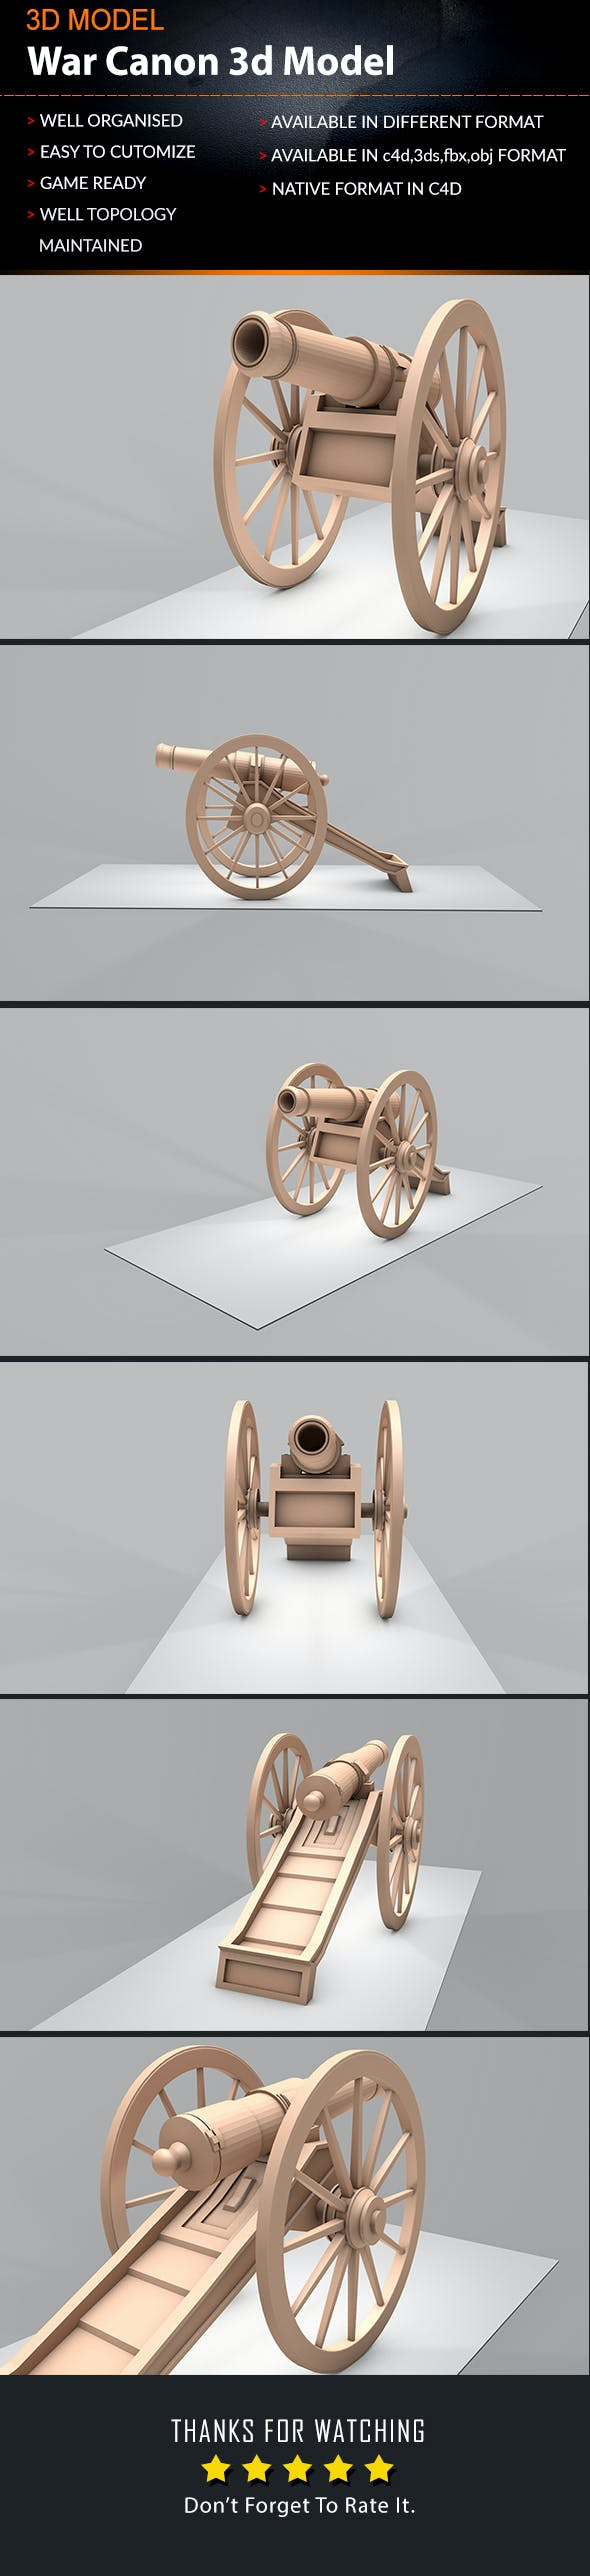 Old Artillery Cannon 3d Lowpoly Model - 3DOcean Item for Sale